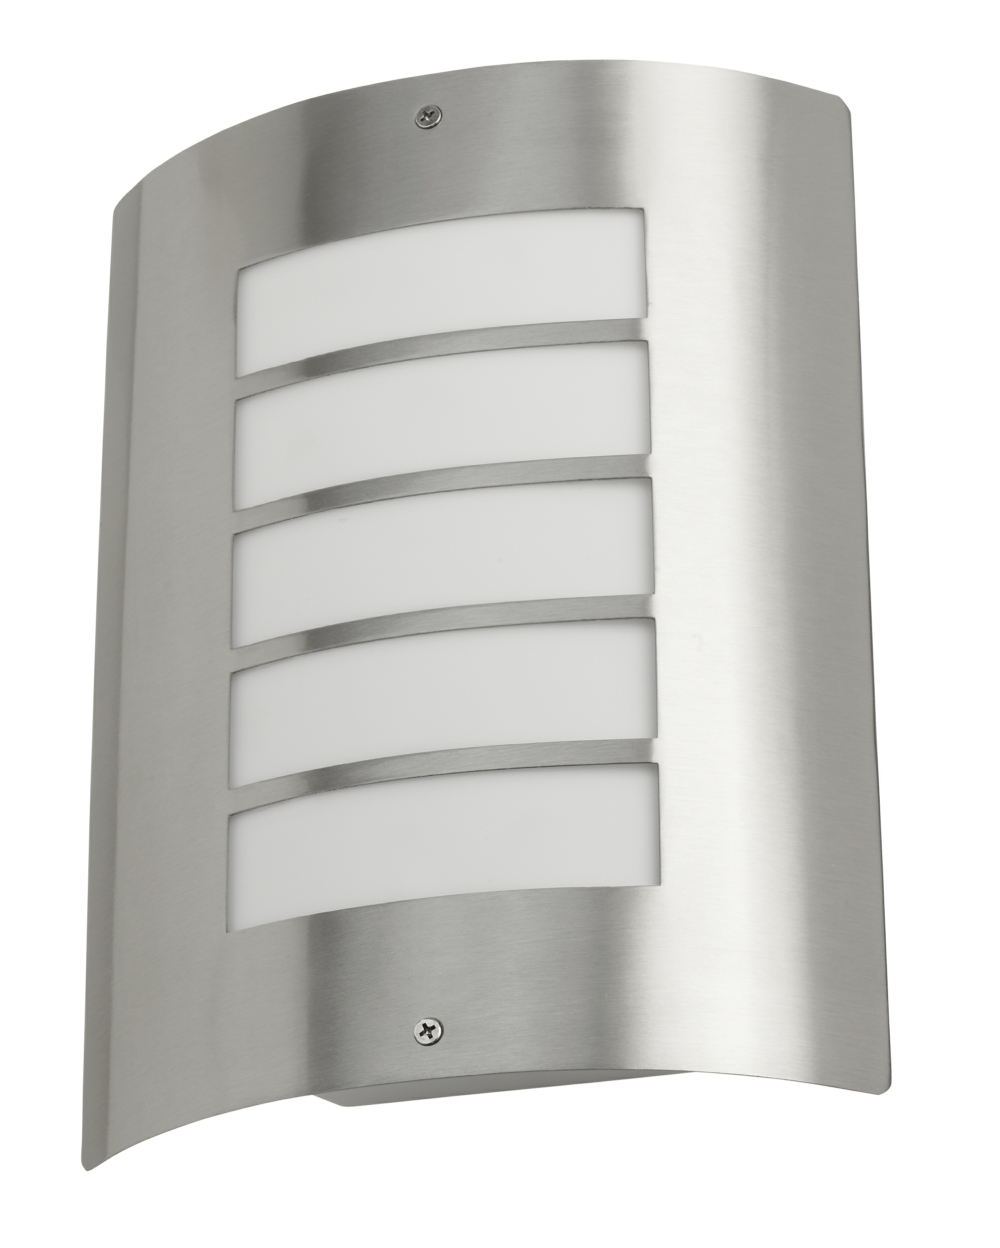 Curved Outdoor Wall Mounted Lighting on Wall Mounted Decorative Lights id=88412